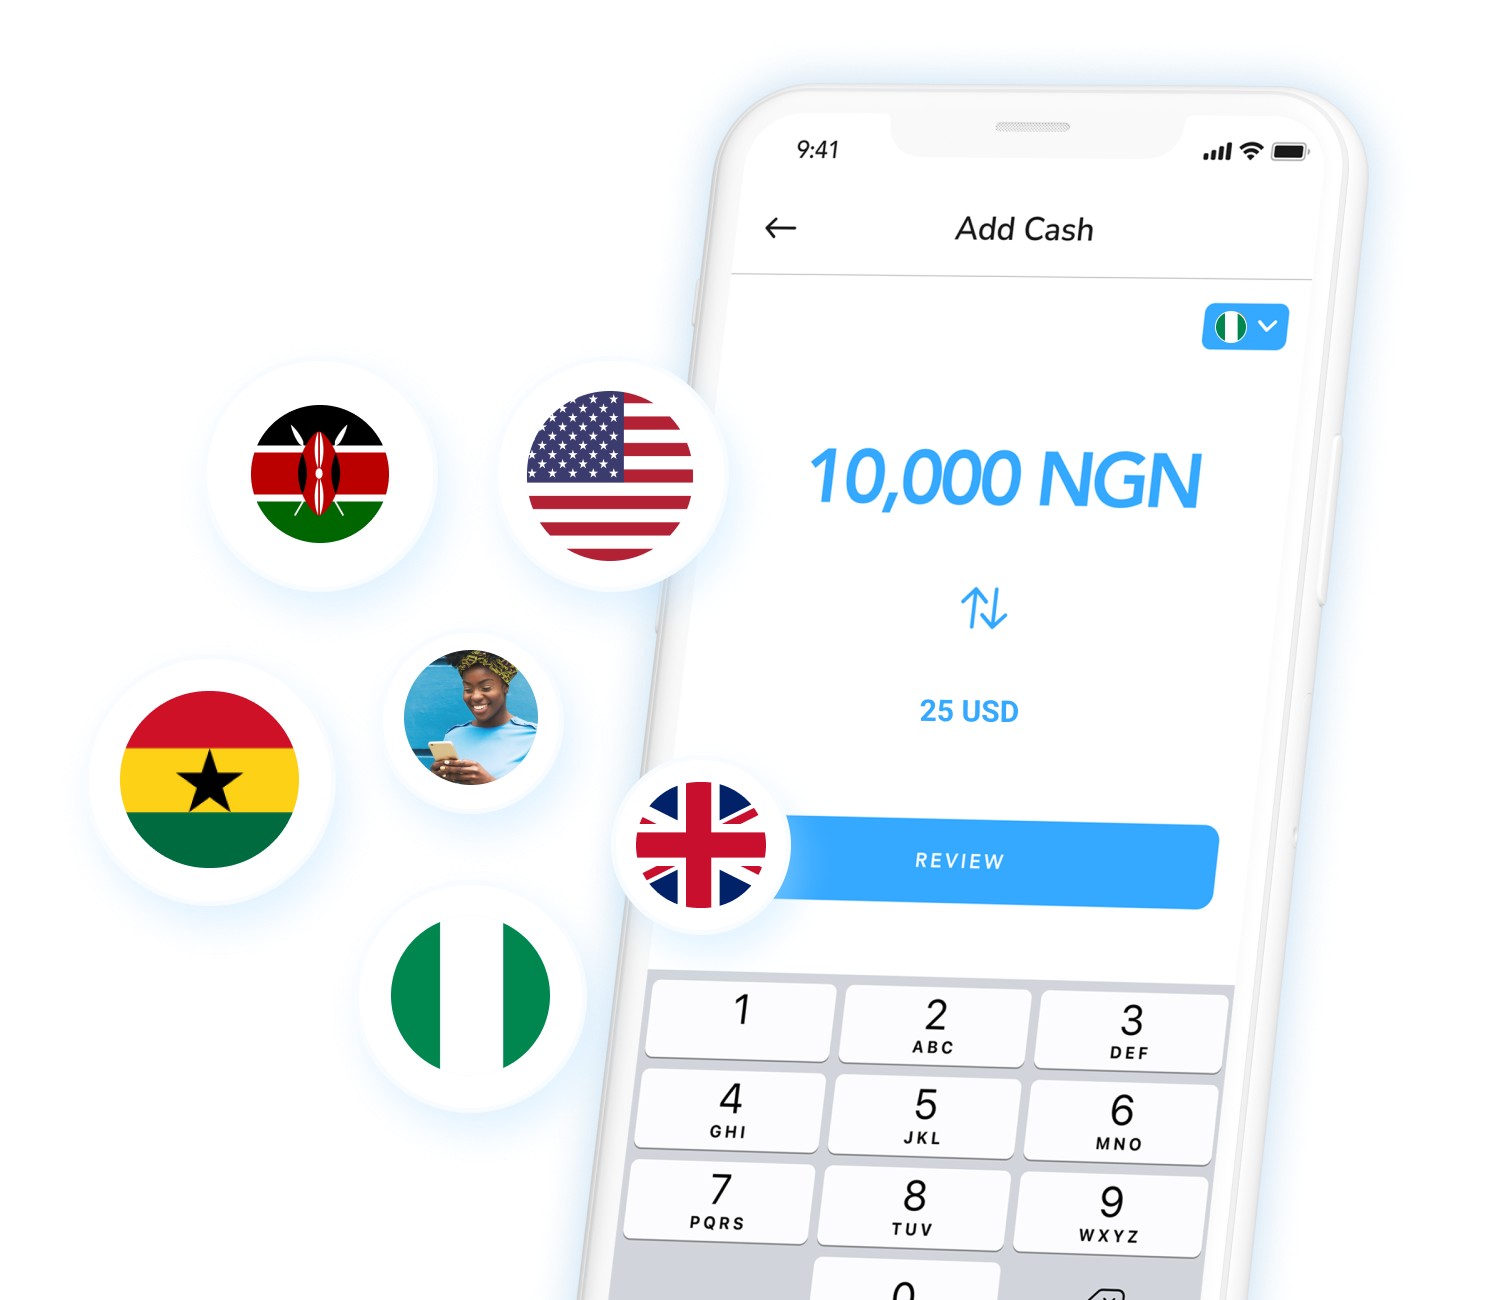 Send money to Africa or to anywhere in the world, with as little as a $5 deposit.